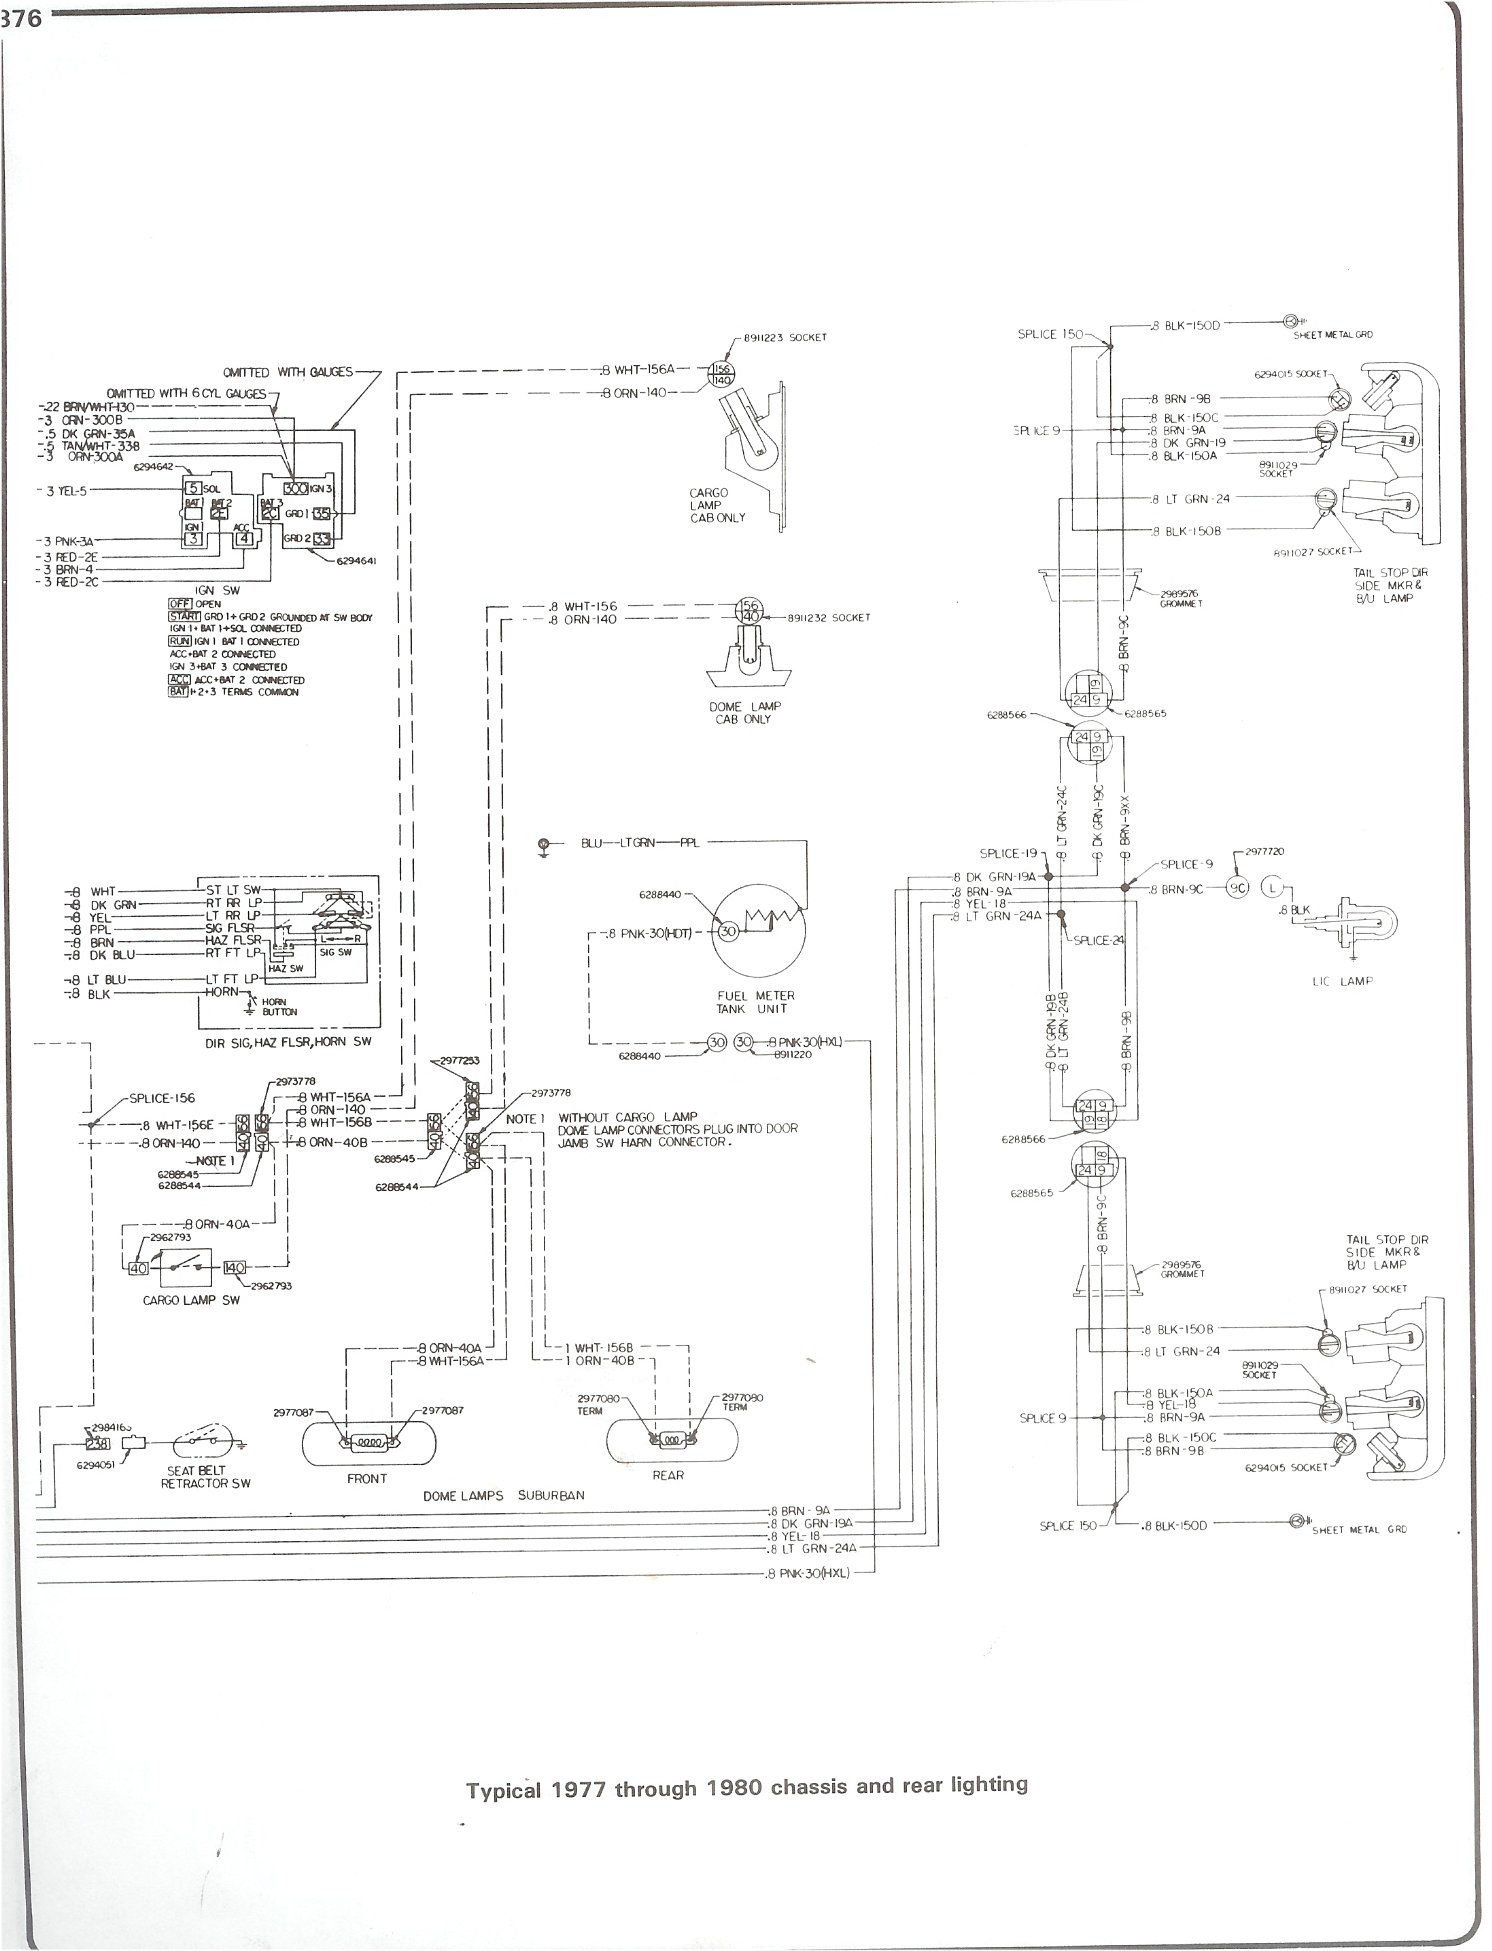 77 80_chass_rr_light complete 73 87 wiring diagrams 2008 Chevy Silverado Wiring Diagram at bayanpartner.co